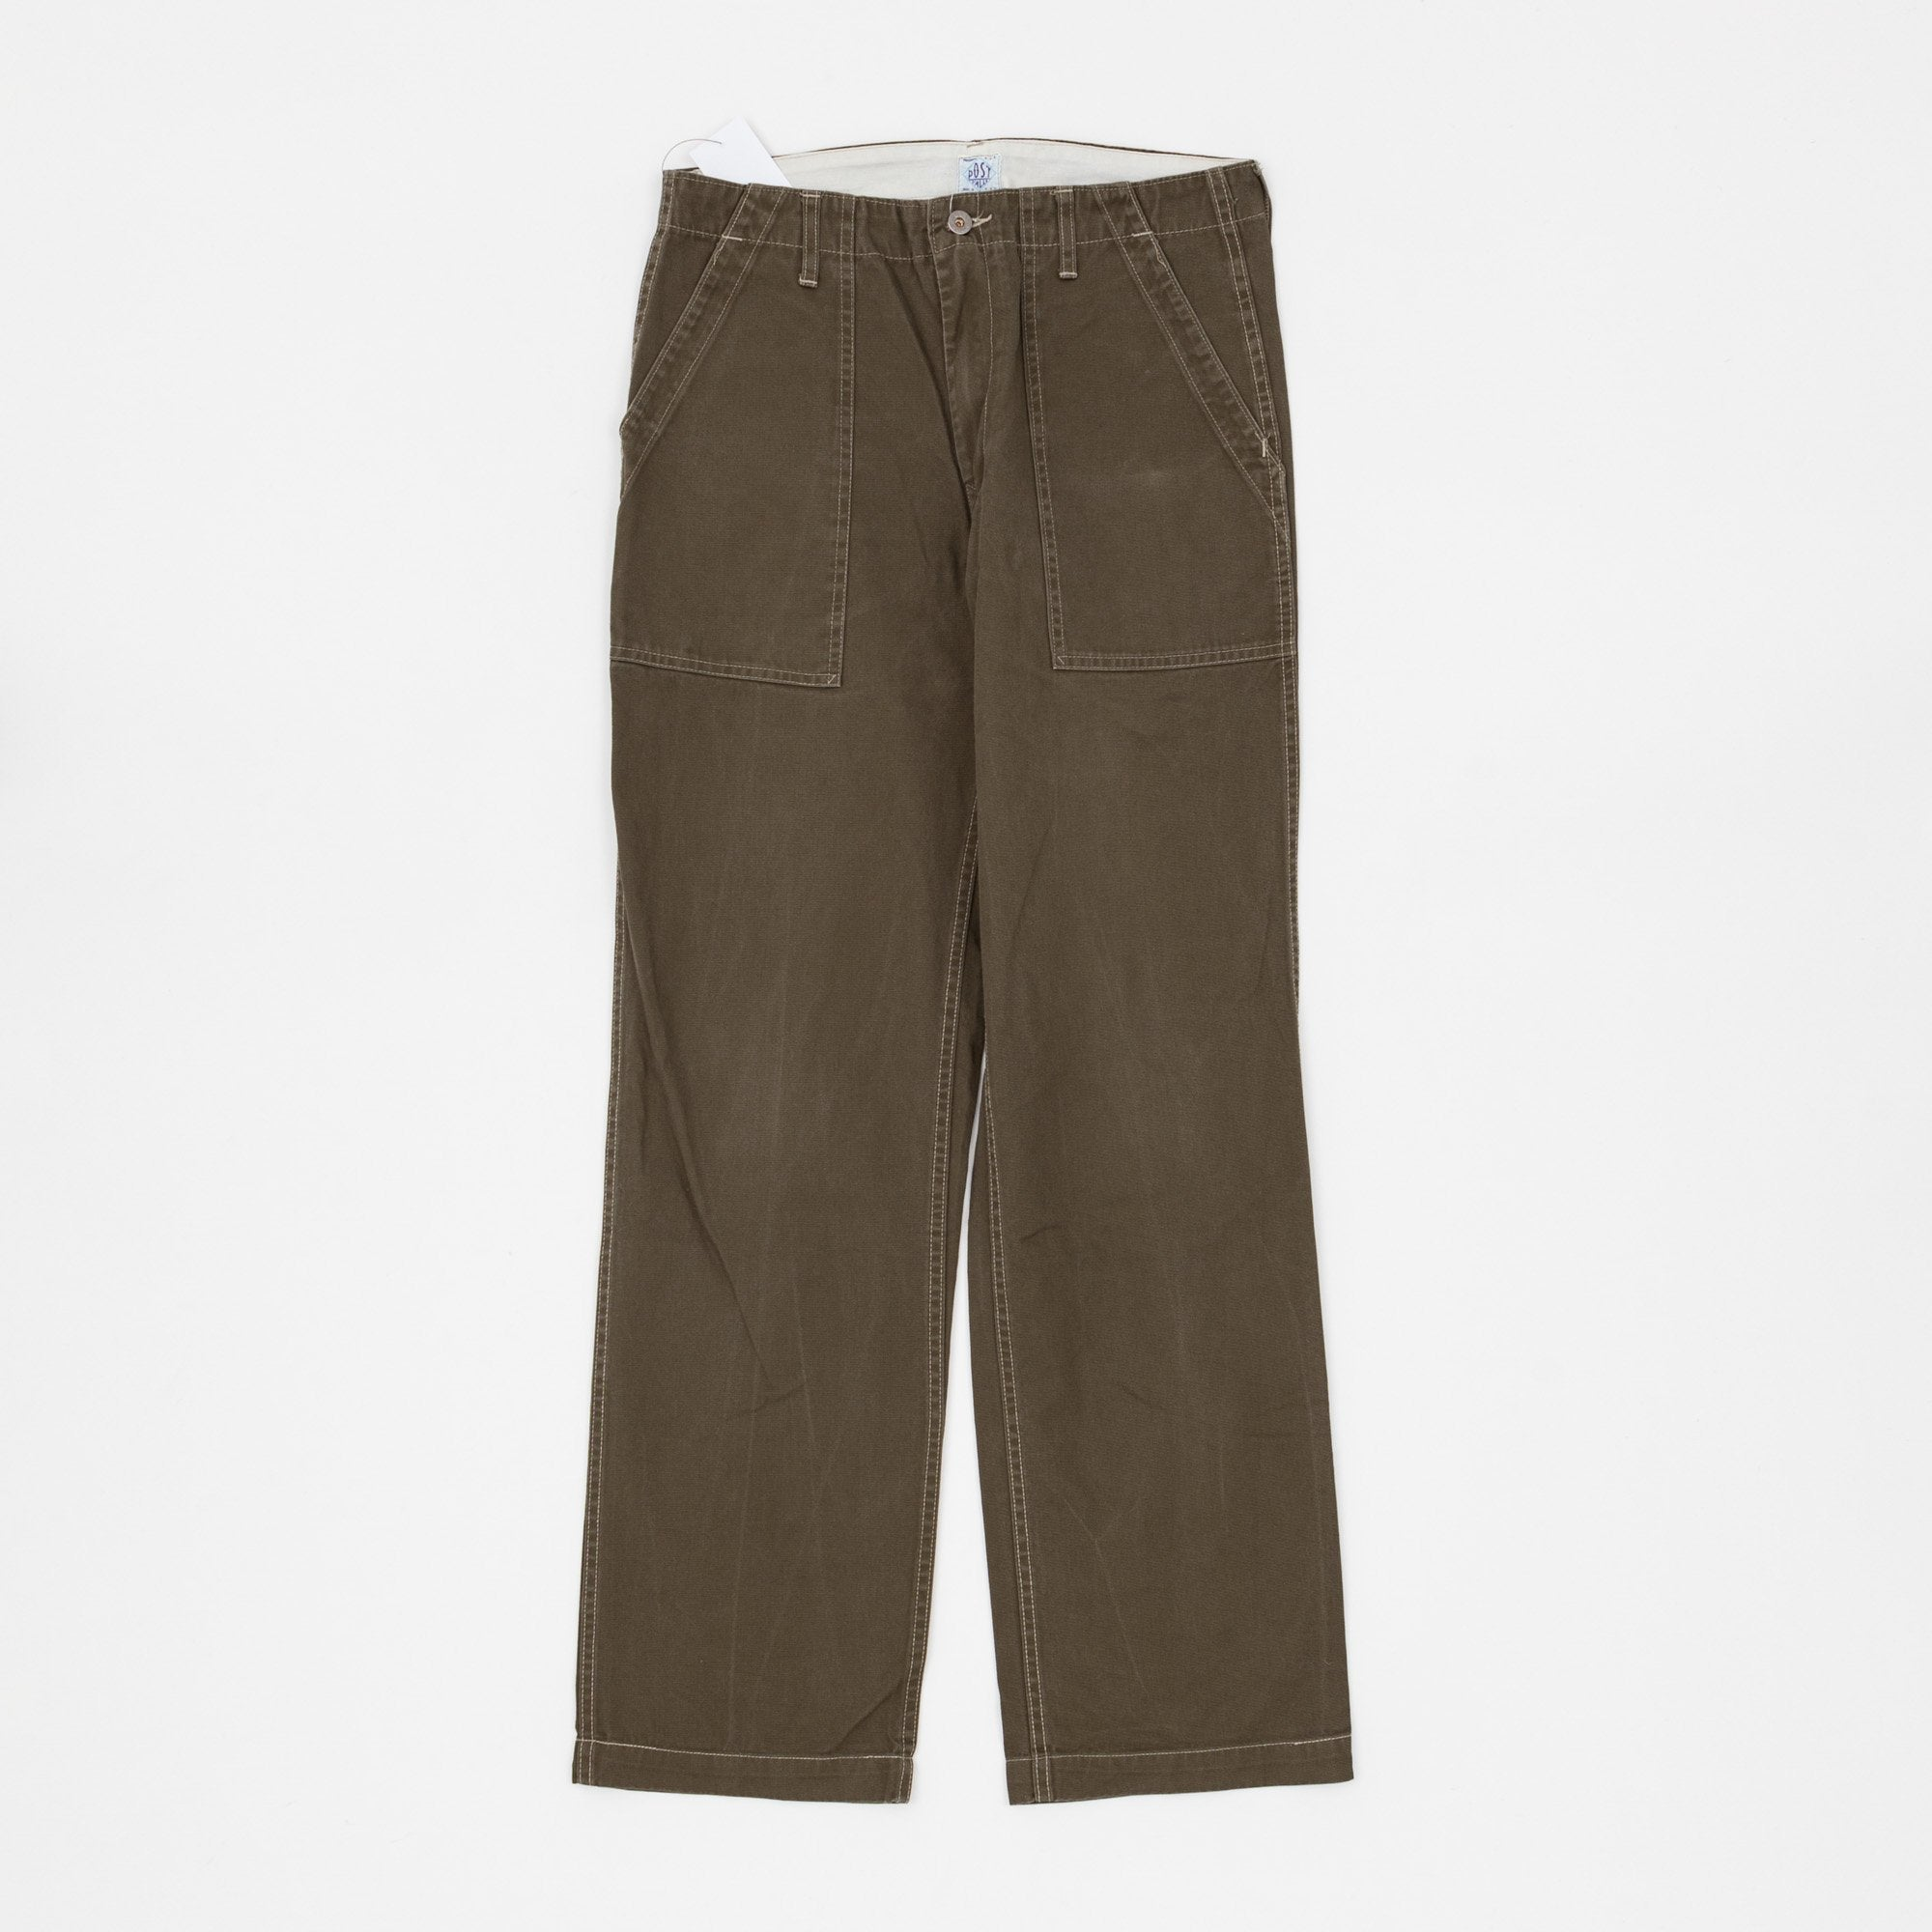 Post Overalls Cotton Fatigue Pant